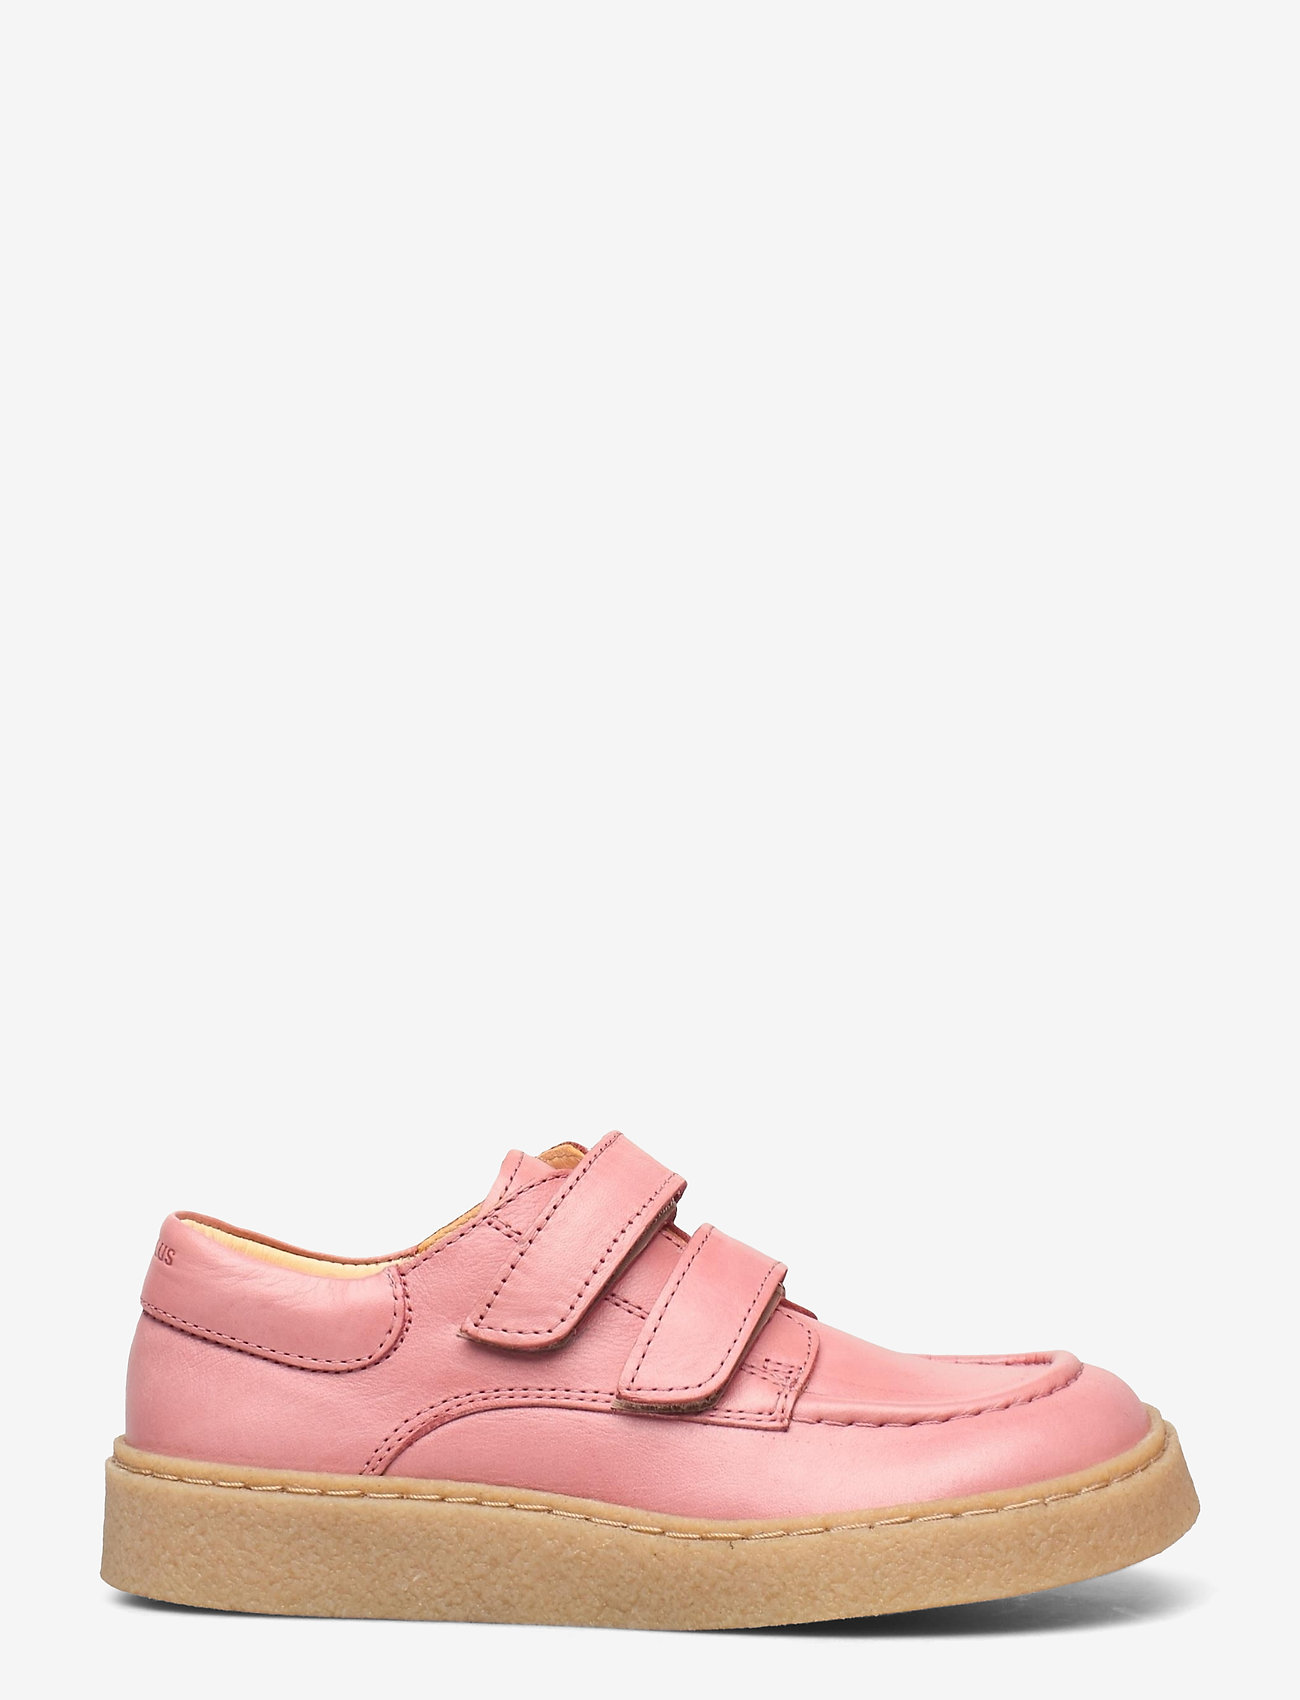 ANGULUS - Shoes - flat - with velcro - låga sneakers - 1542 rose - 1